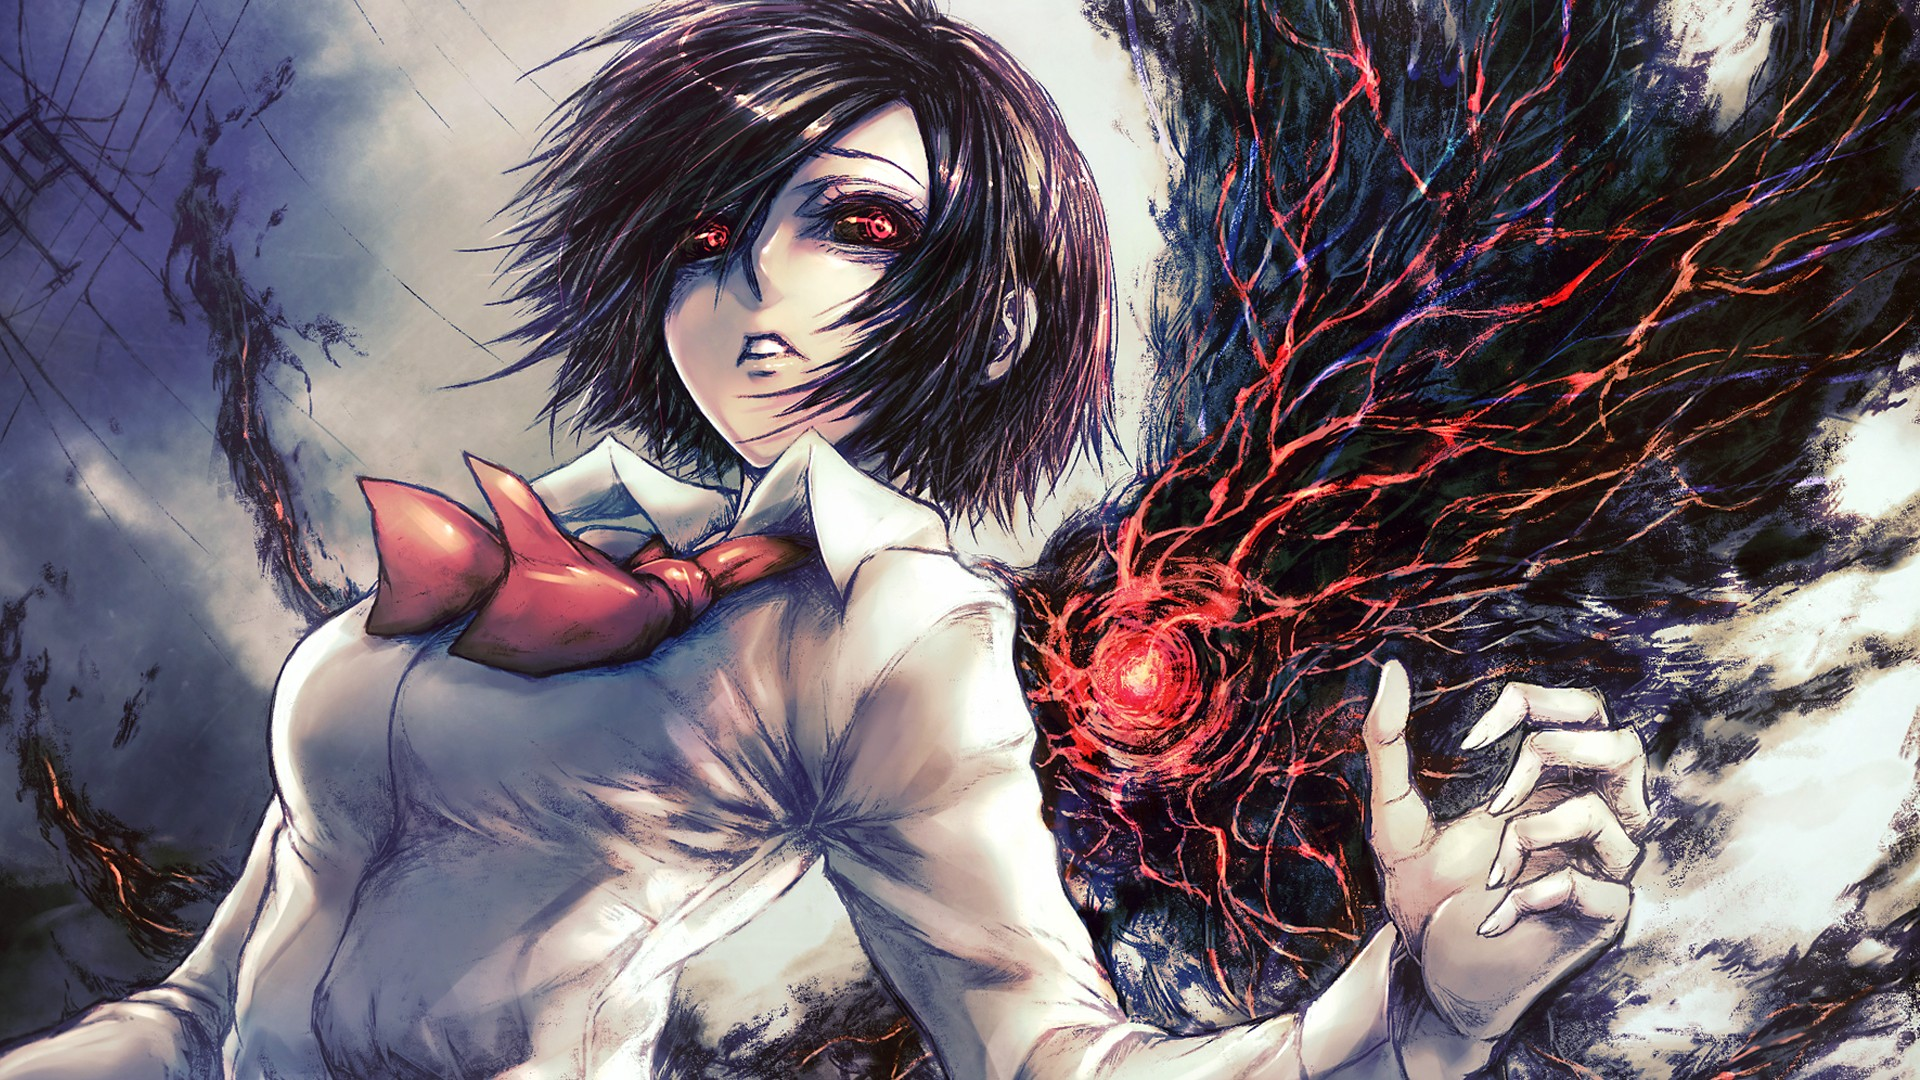 Tokyo ghoul wallpaper hd download free cool backgrounds - Tokyo anime wallpaper ...